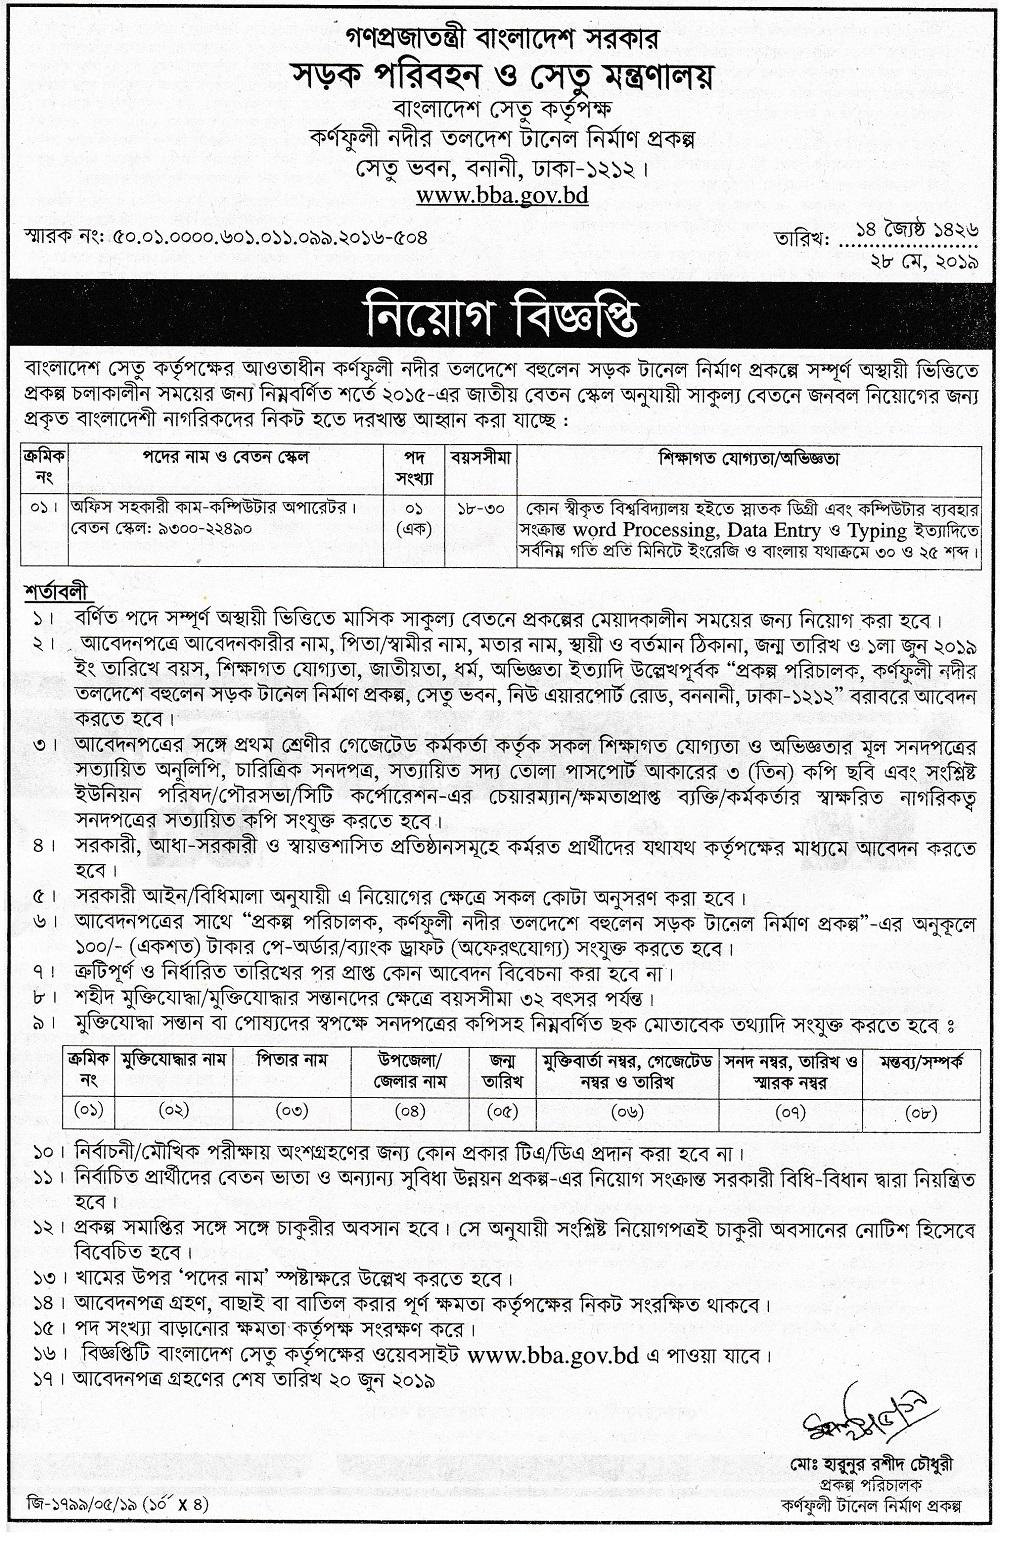 Bangladesh Road Transport Corporation (BRTC) Job Circular 2019